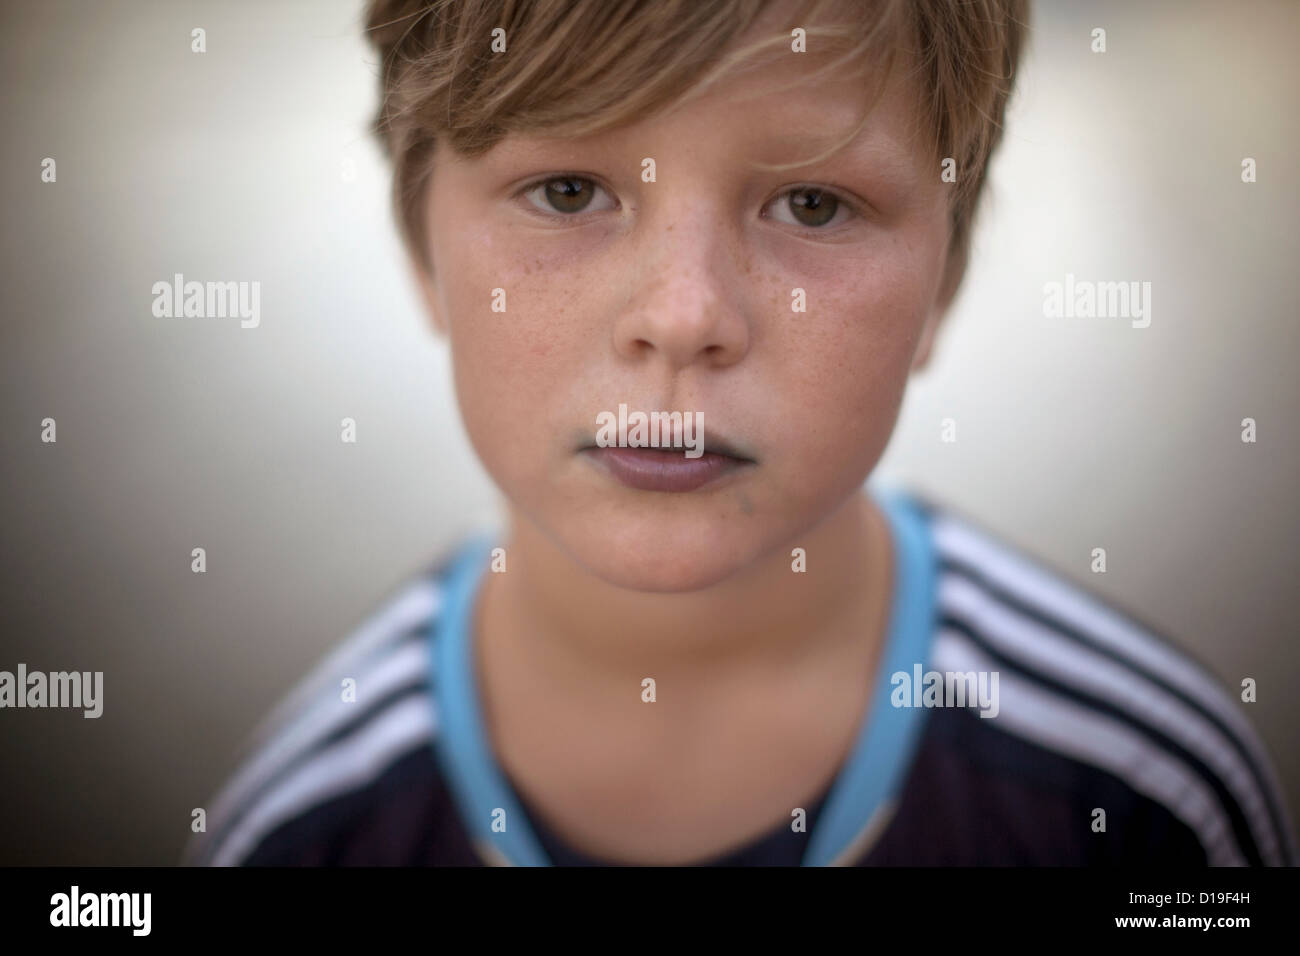 Close up portrait of boy looking at camera with blue stained lips - Stock Image